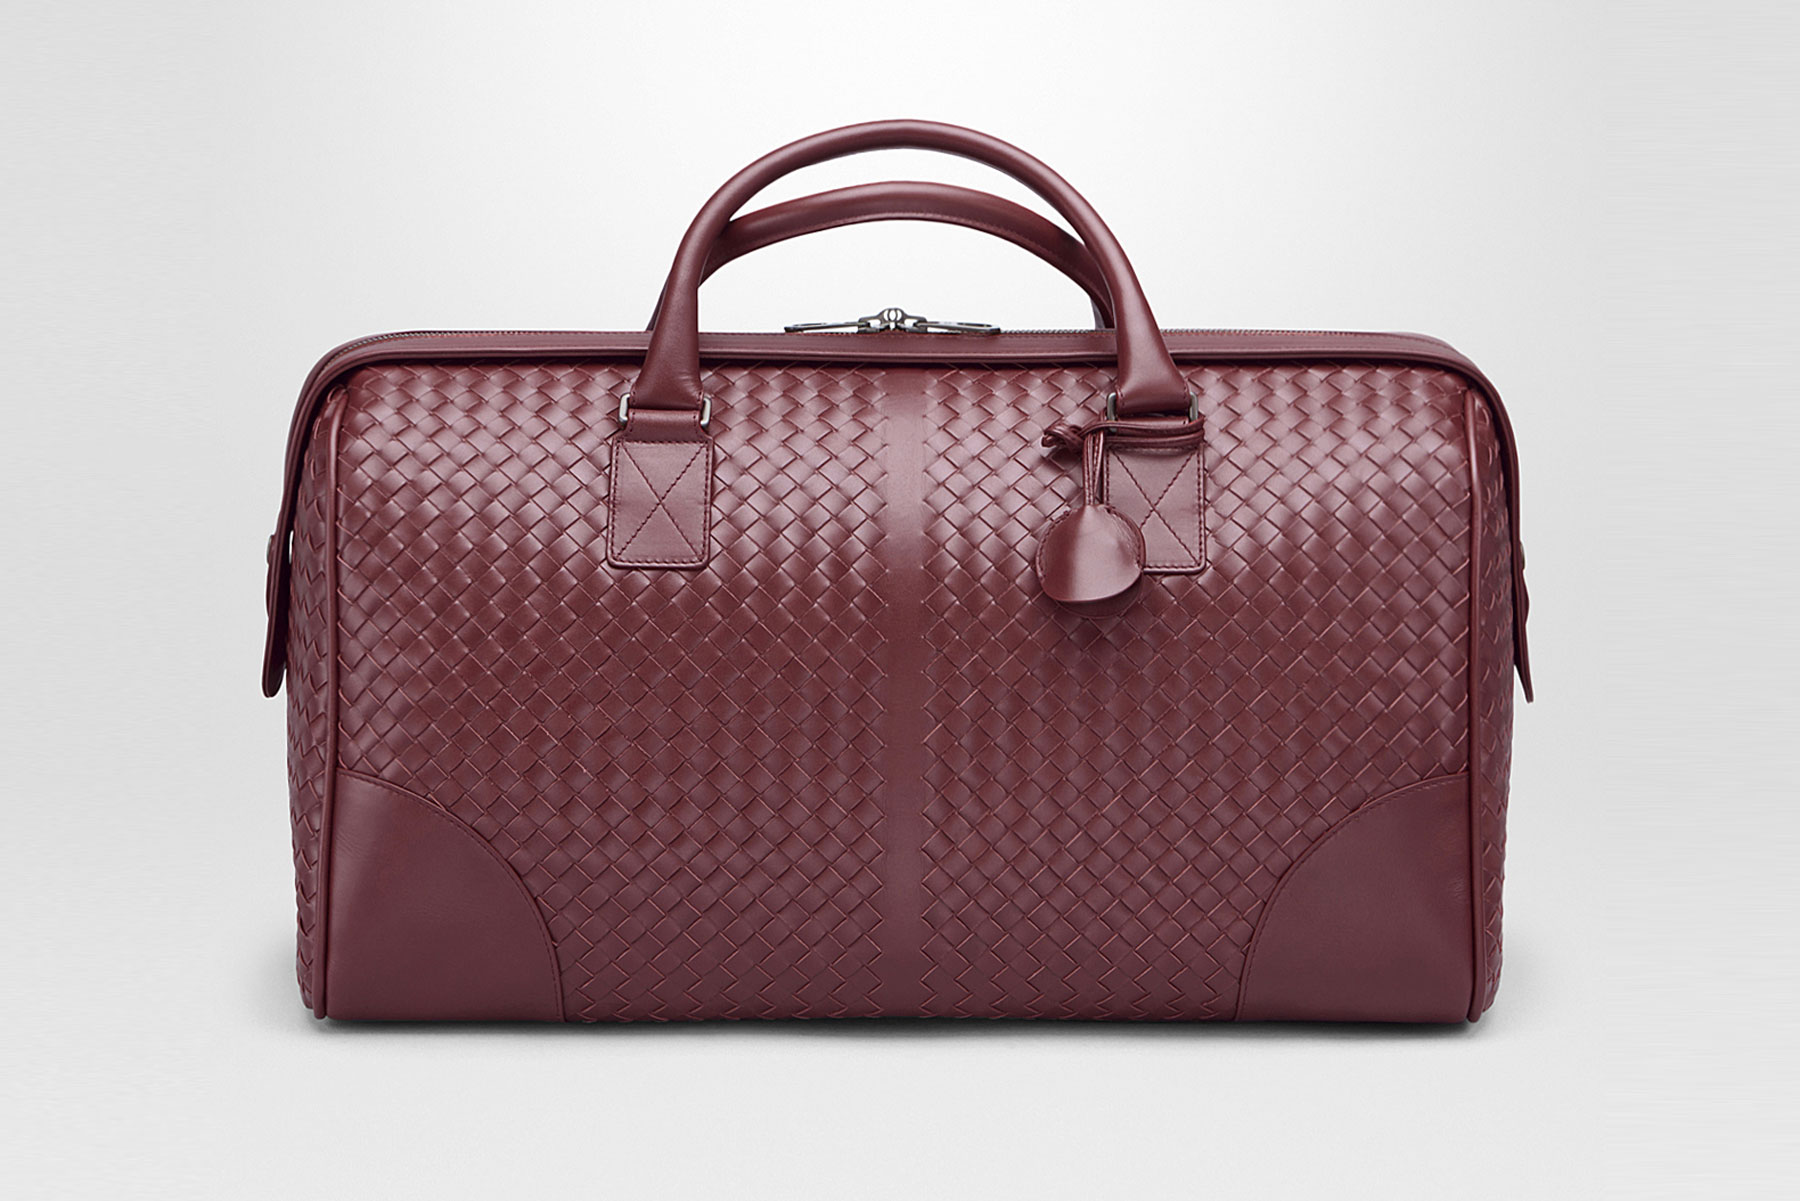 Dark red leather duffel bag